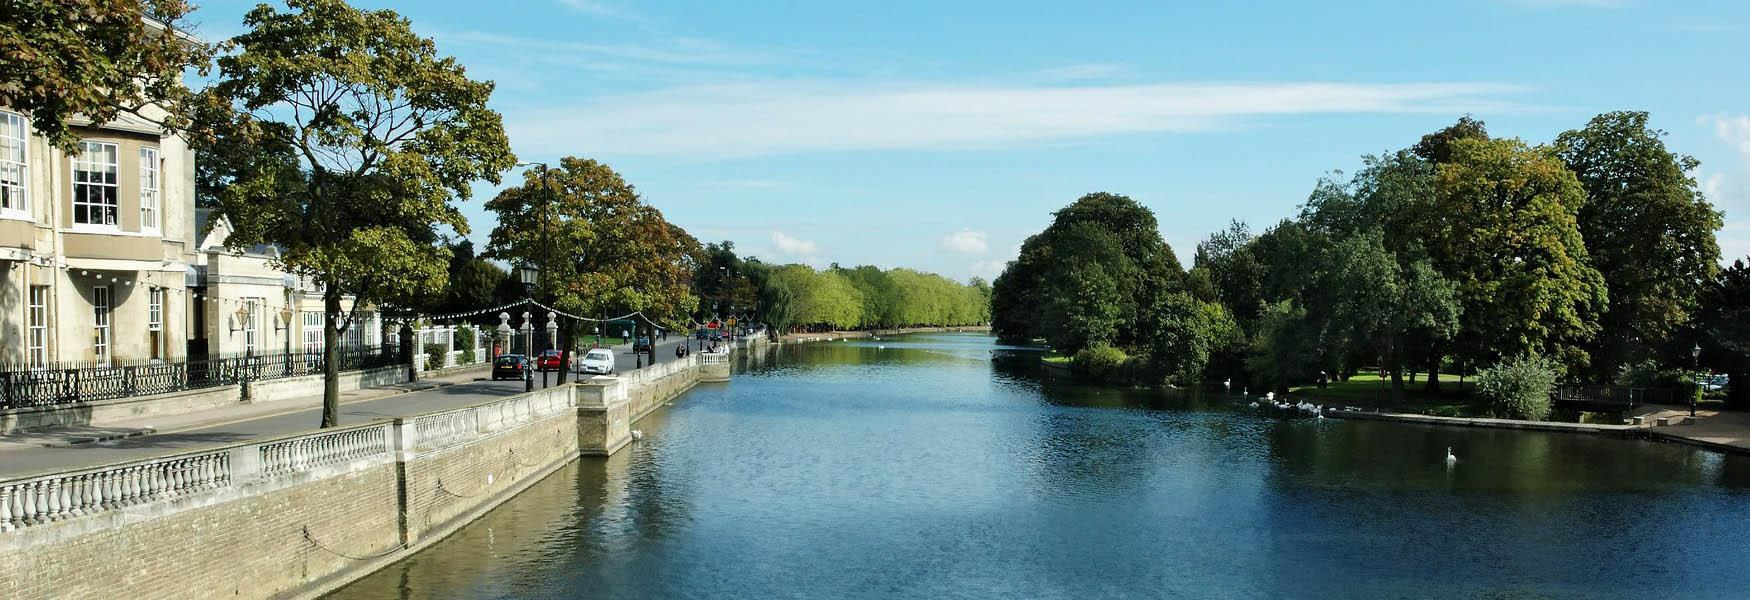 River Ouse in Bedford